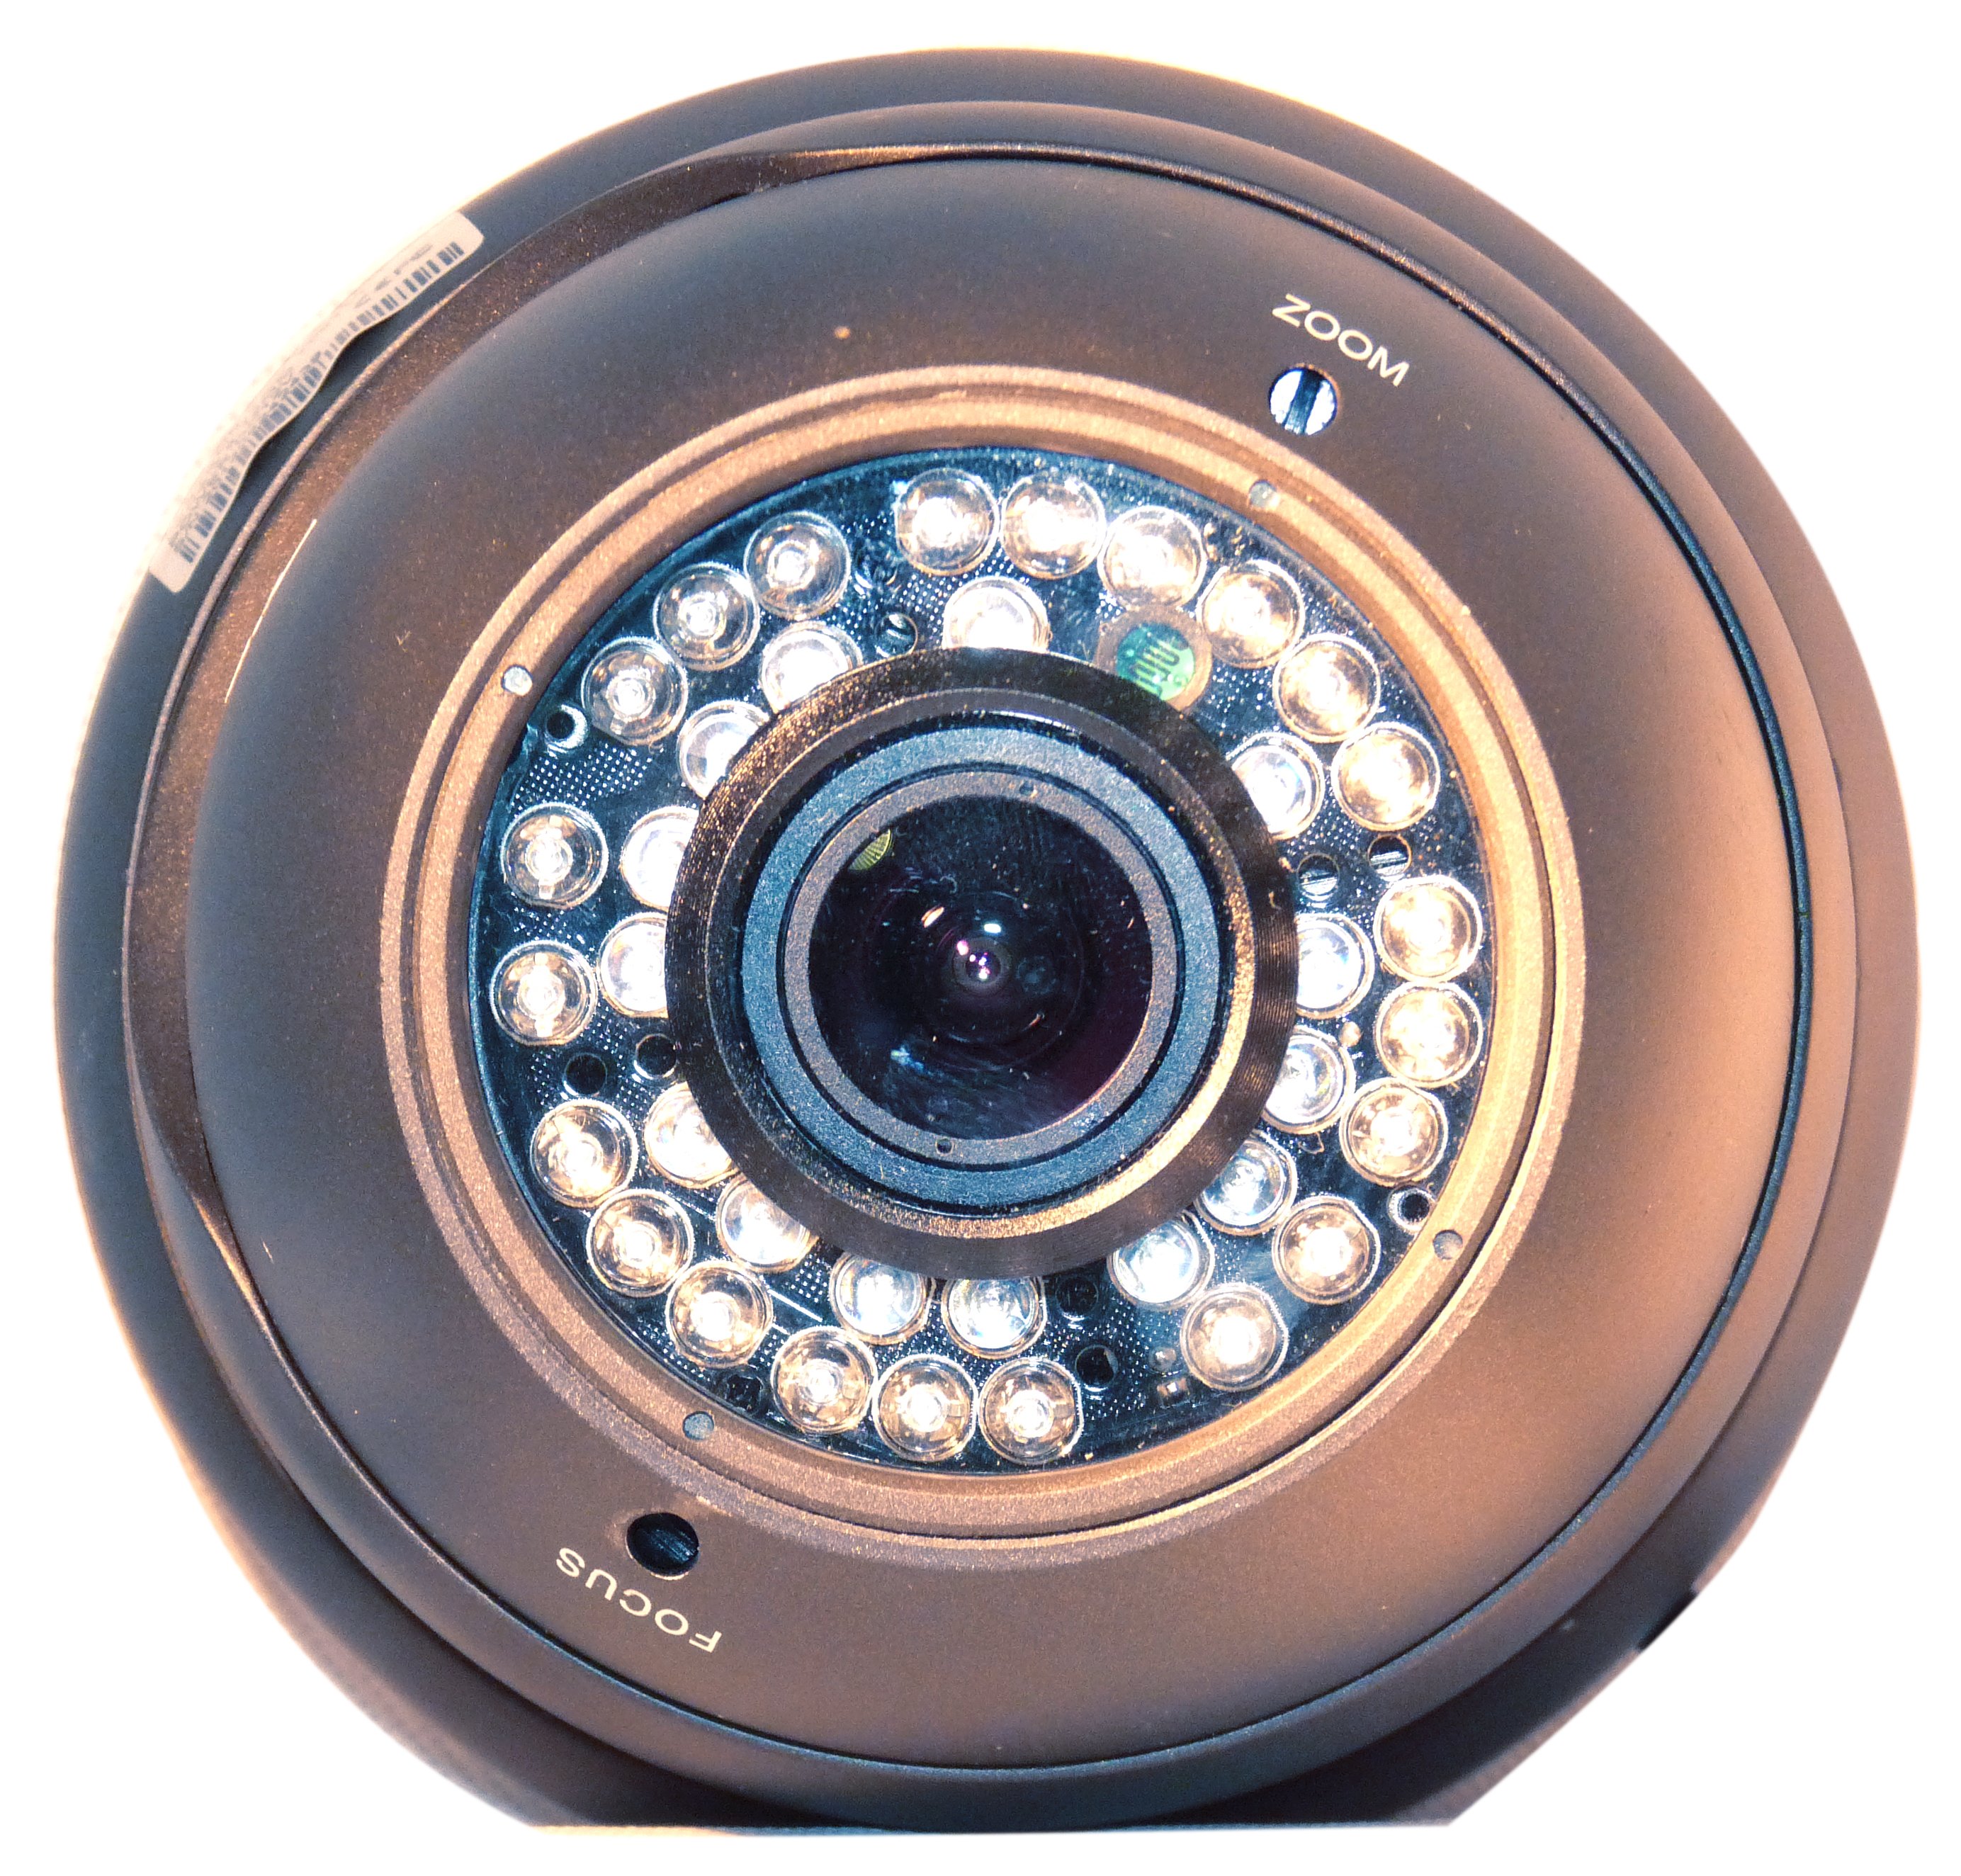 Image for DBS 760G - 700TVL CCTV Dome Security Camera - 1/3'' Sony Super HAD CCD II